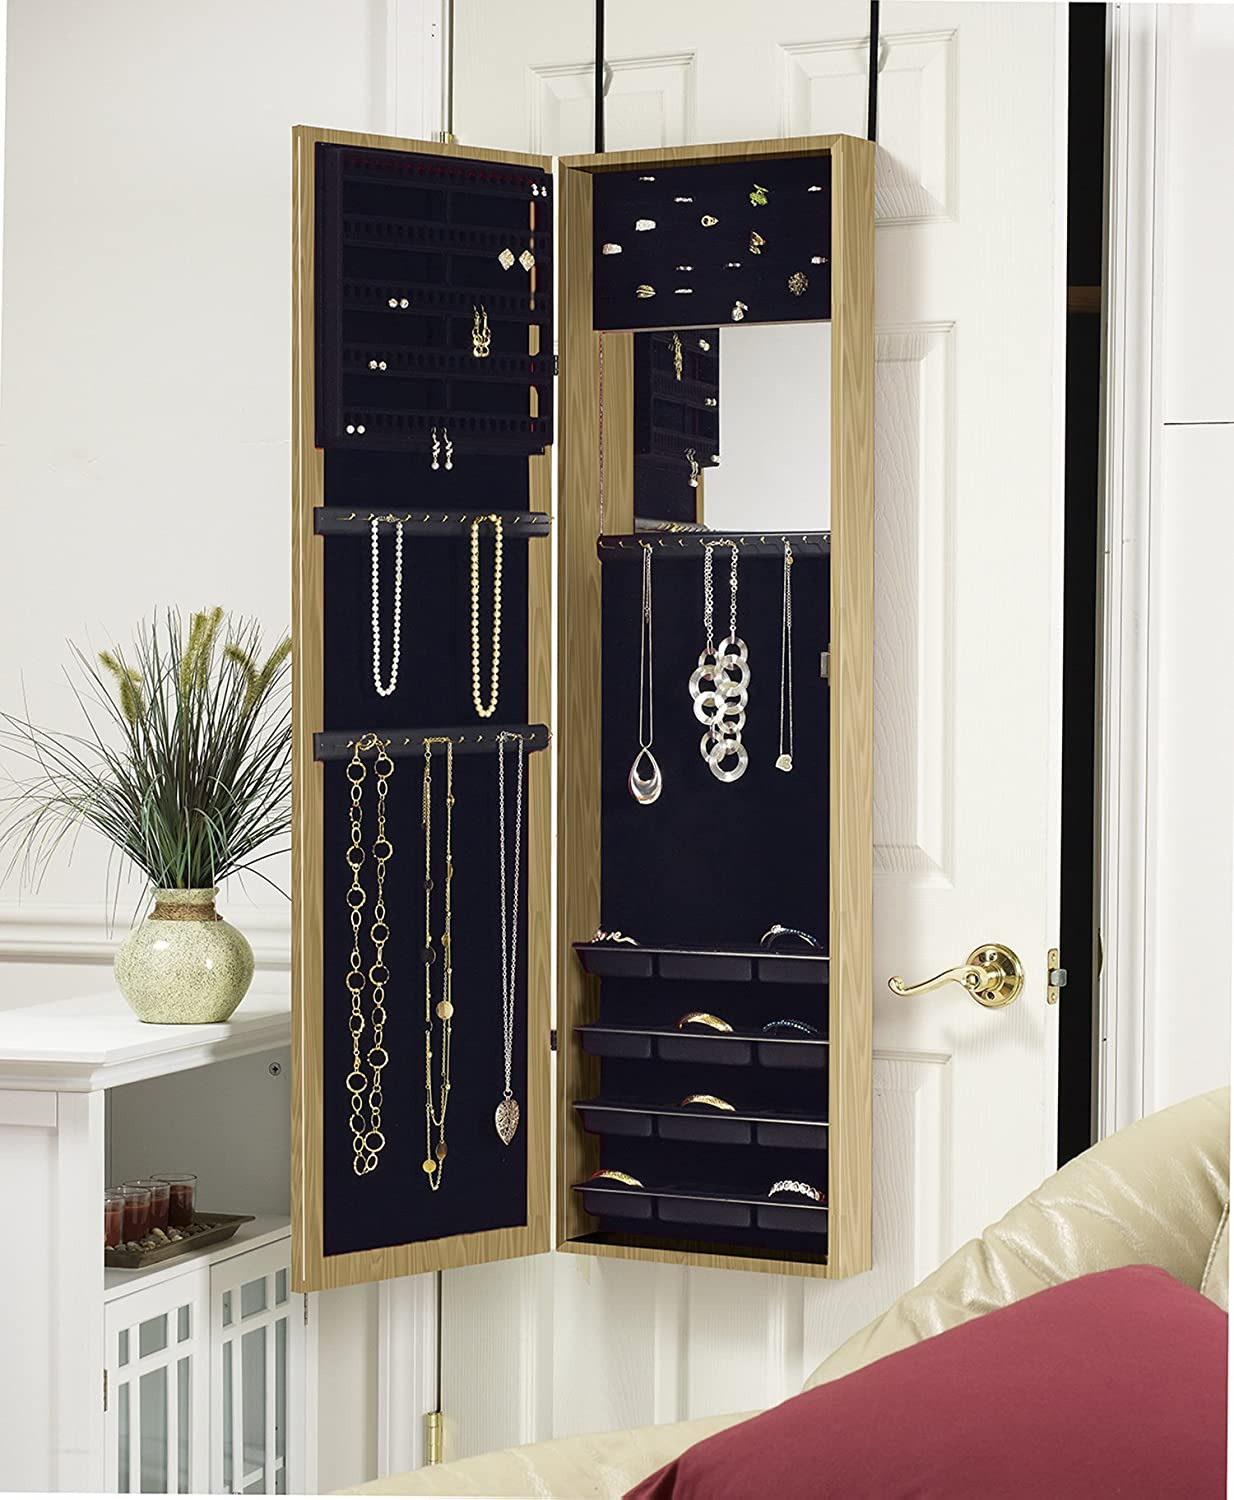 Over the Door Jewelry Cabinet Unique Plaza astoria Over the Door Wall Mount Jewelry Armoire with Full Length Dressing Mirror and Vanity Mirror for Earrings Necklaces and Rings Oak